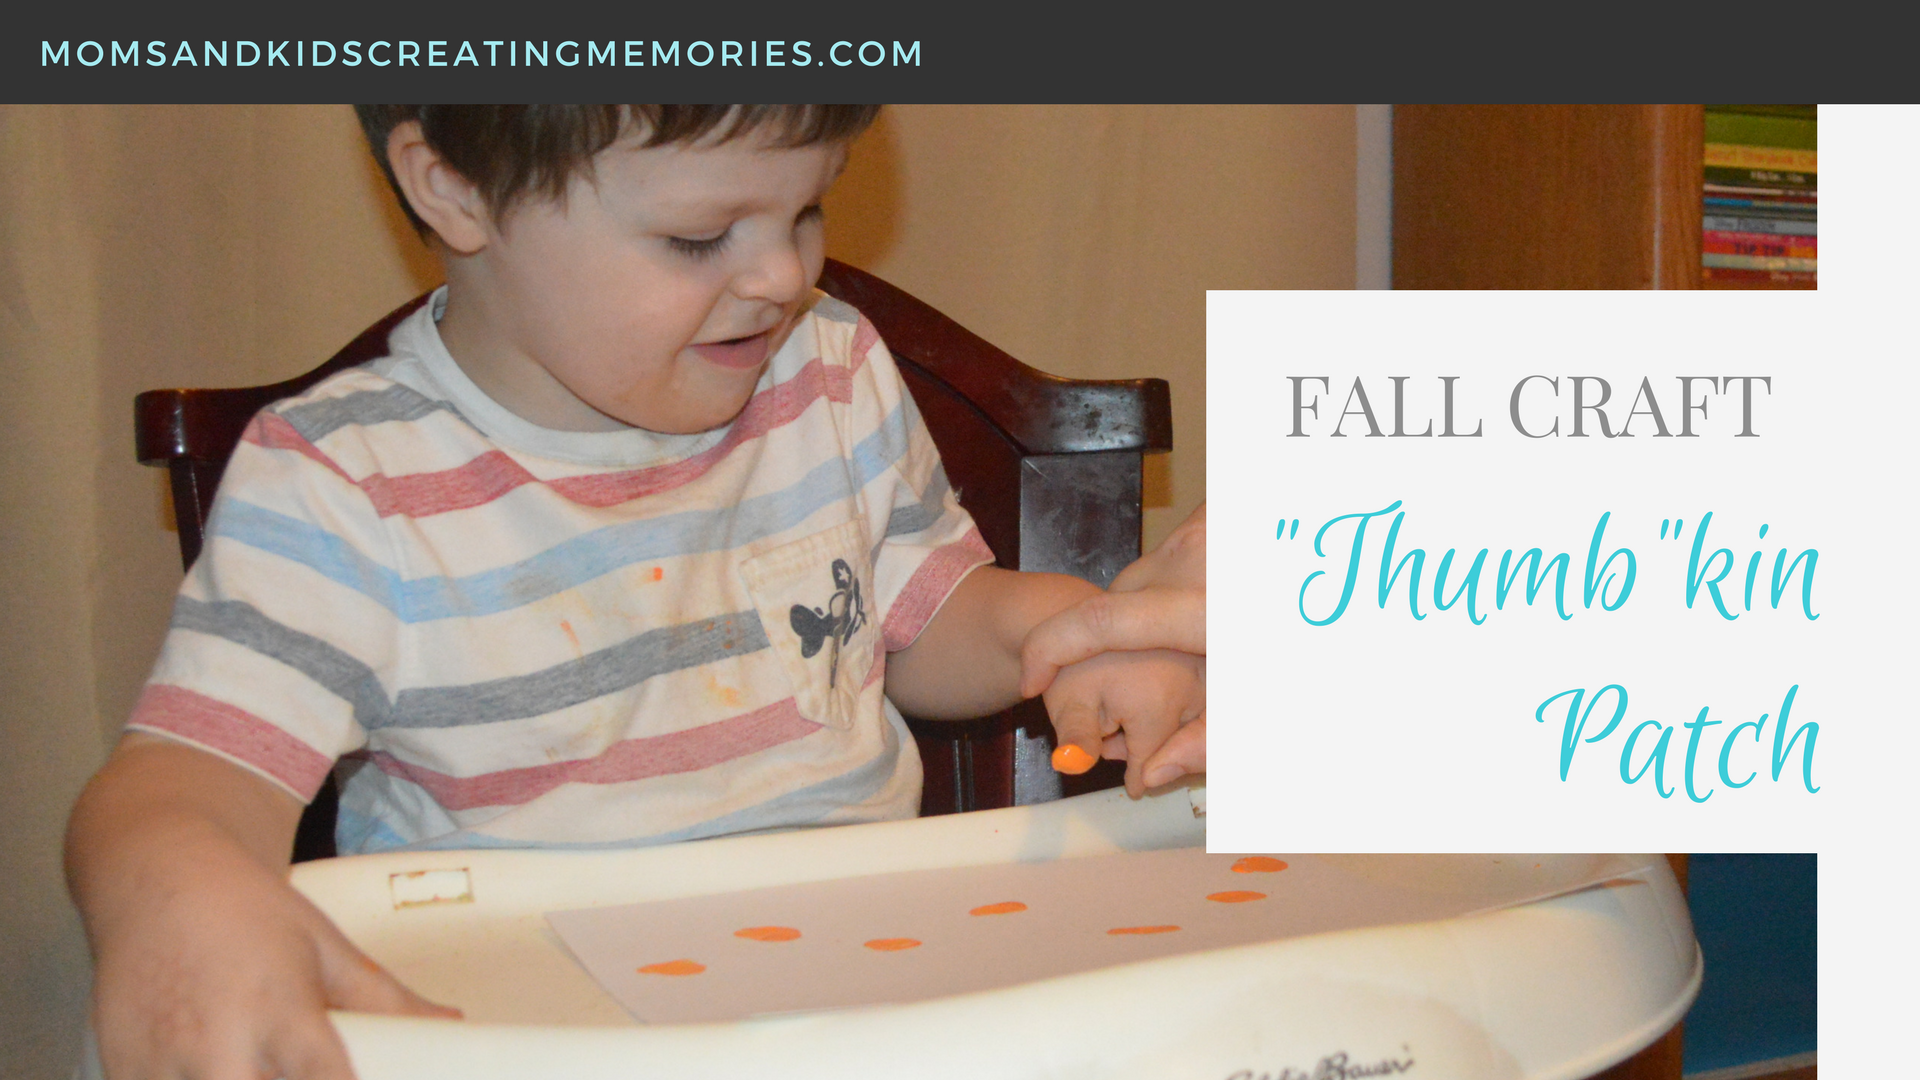 Thumb-kin Patch Fall Craft - using your kids thumbprints to have fun, create a memory and make a keepsake.